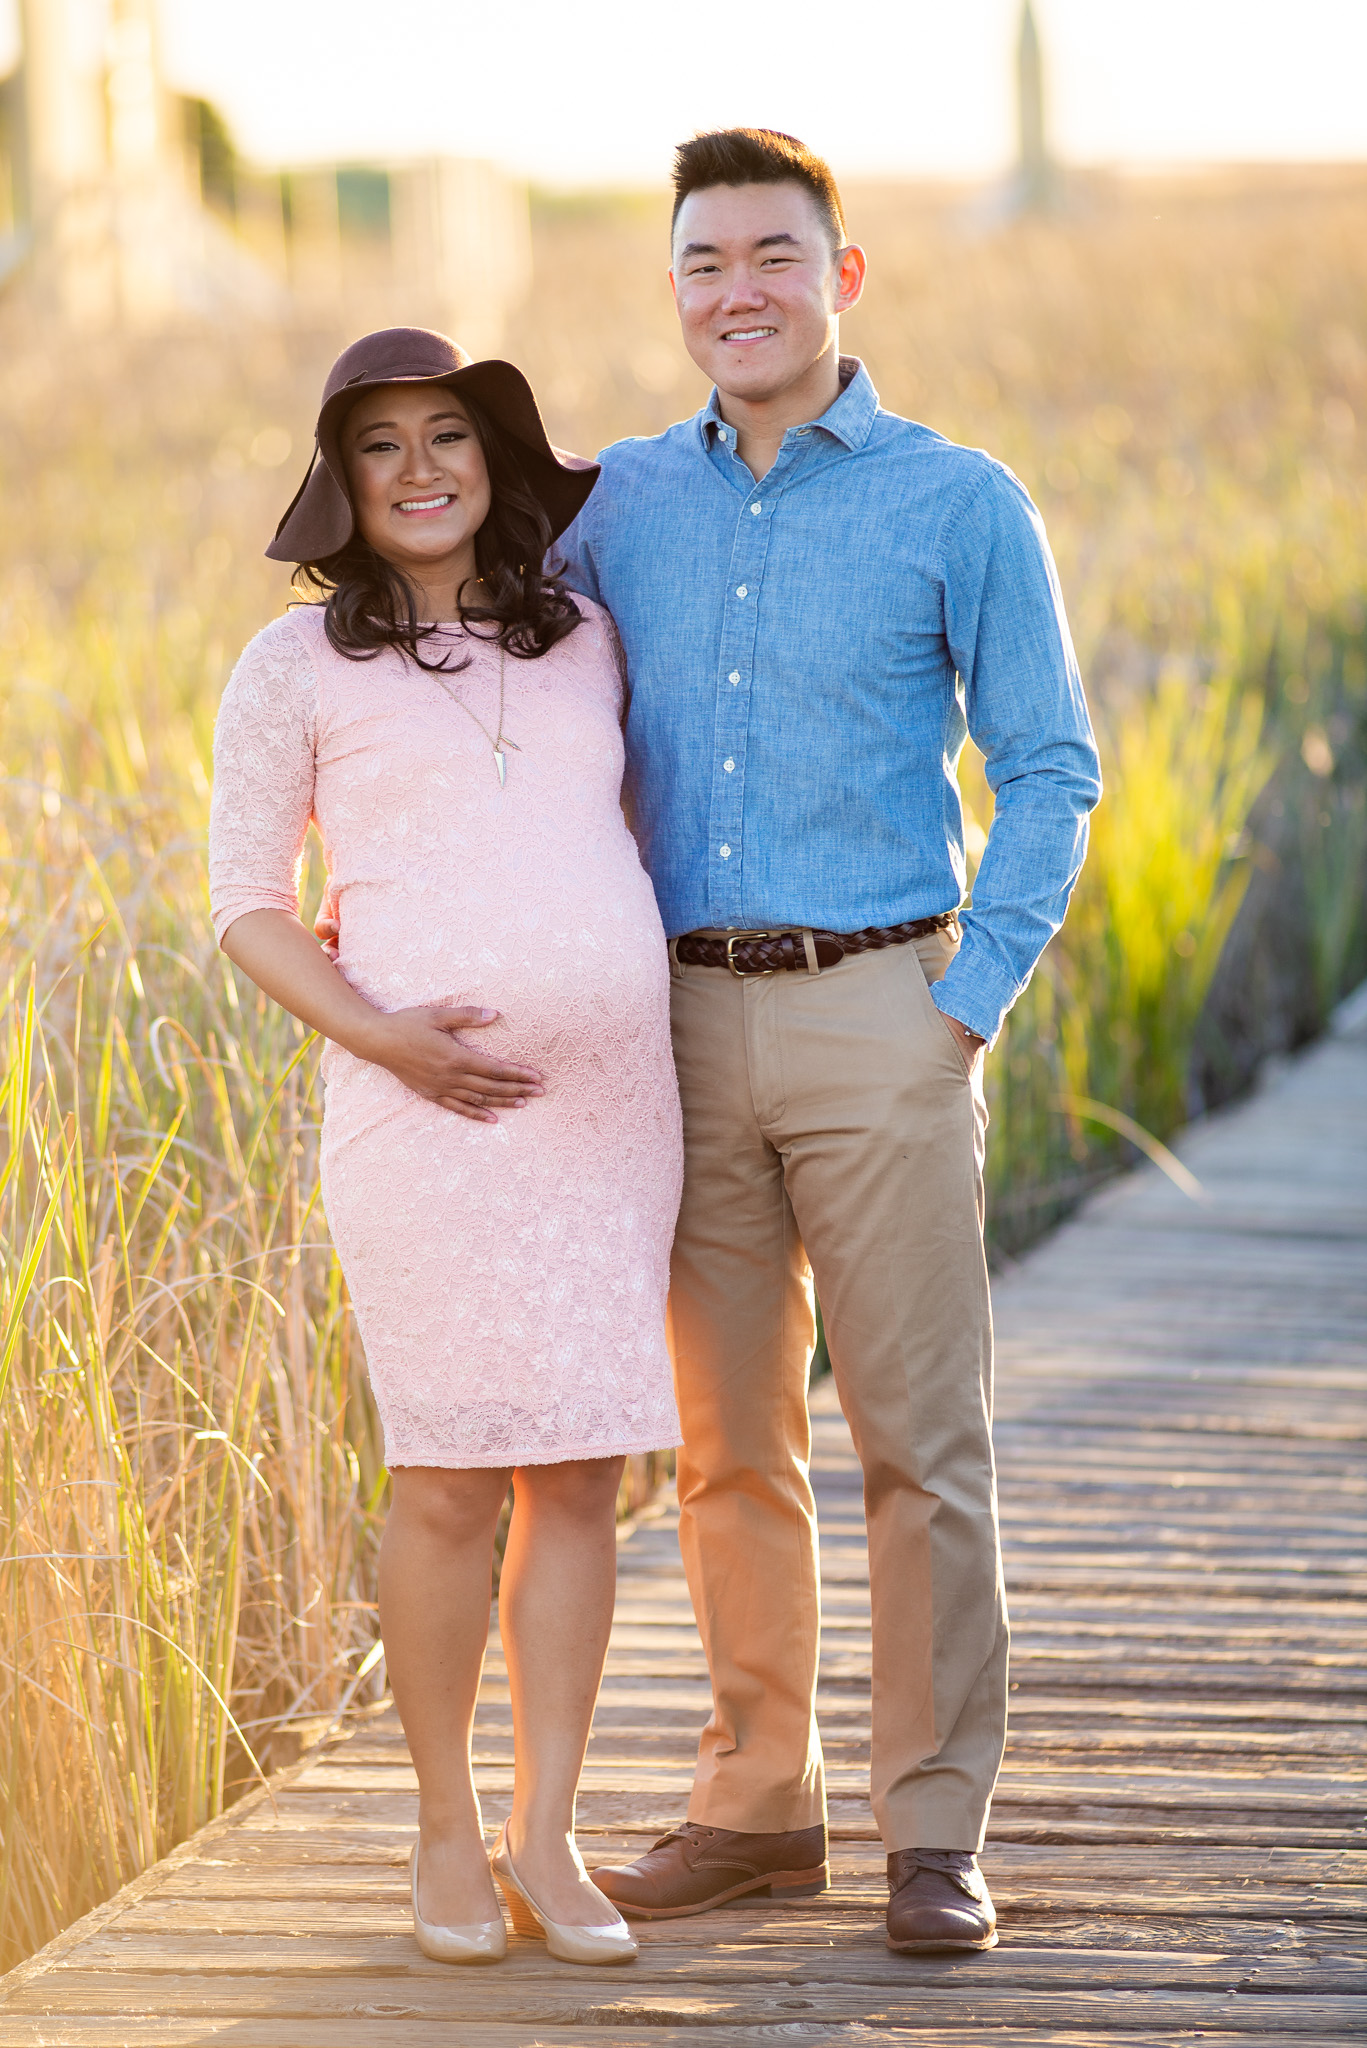 Evening Sunset Maternity Photo Shoot-9.jpg